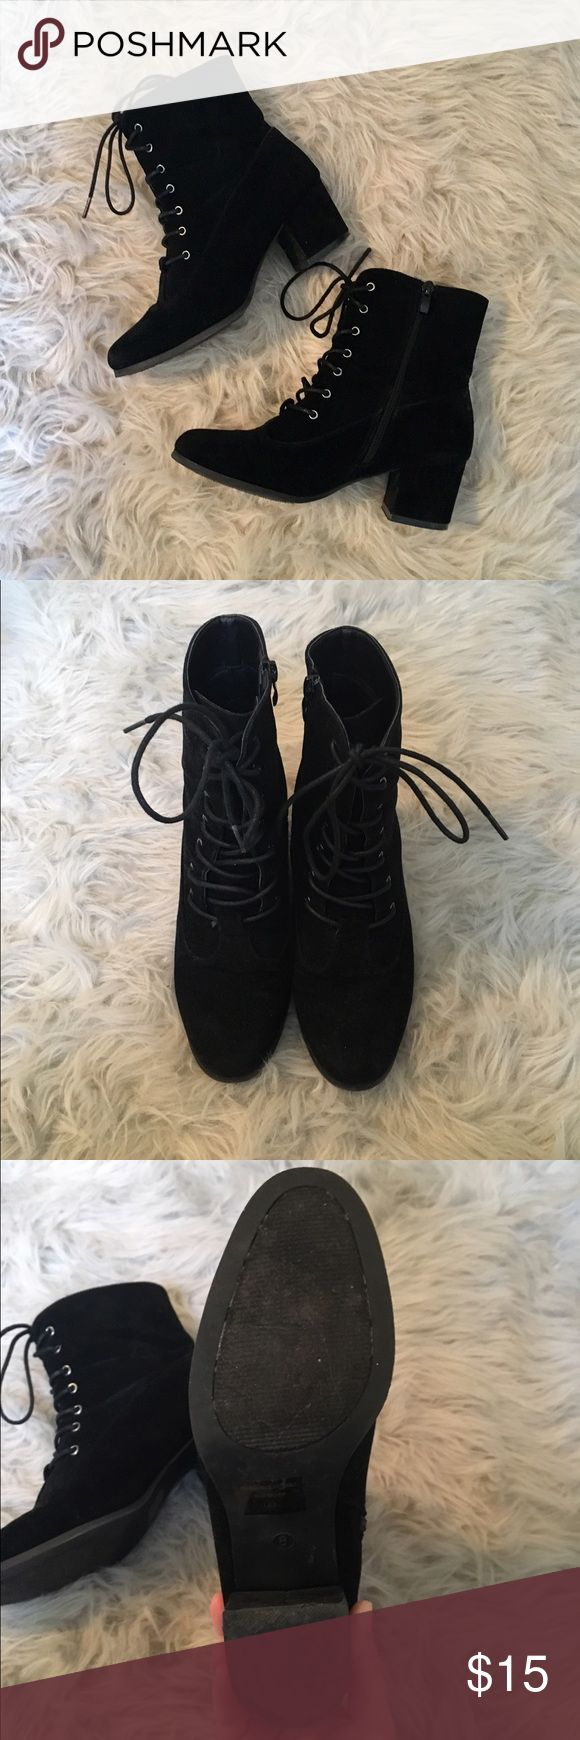 Lace up combat boots Excellent condition Charlotte Roos lace up combat boots! Only worn two or three times. Charlotte Russe Shoes Lace Up Boots